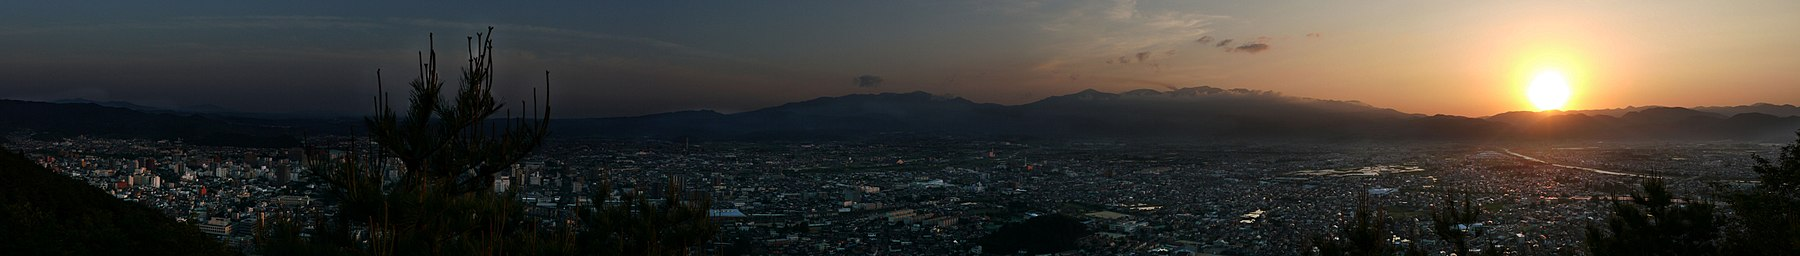 Sunset over Fukushima photographed from Mt. Shinobu